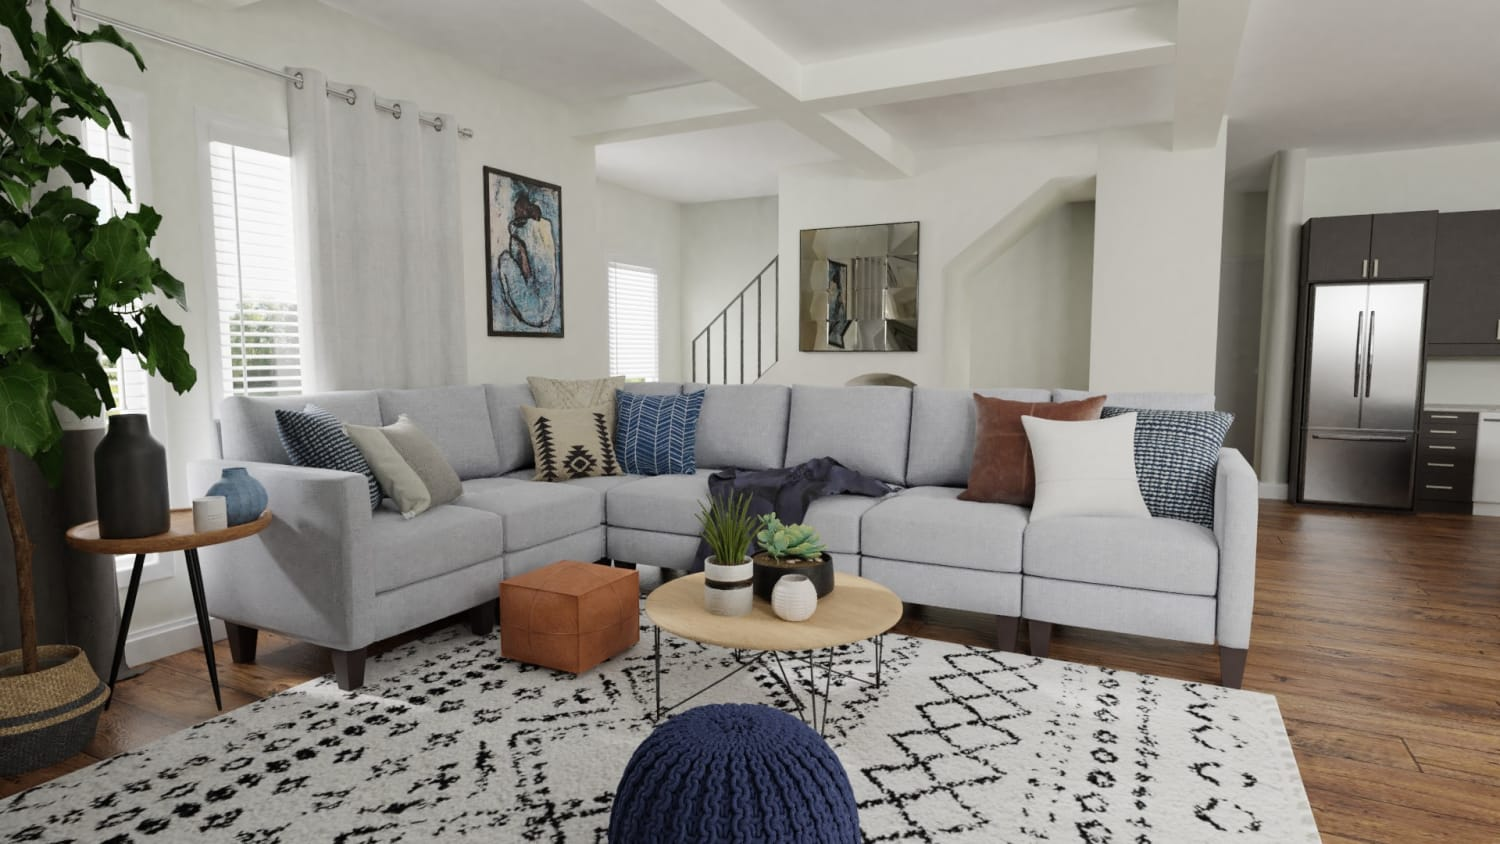 Spacejoy review of Living Room Designed For Zoe